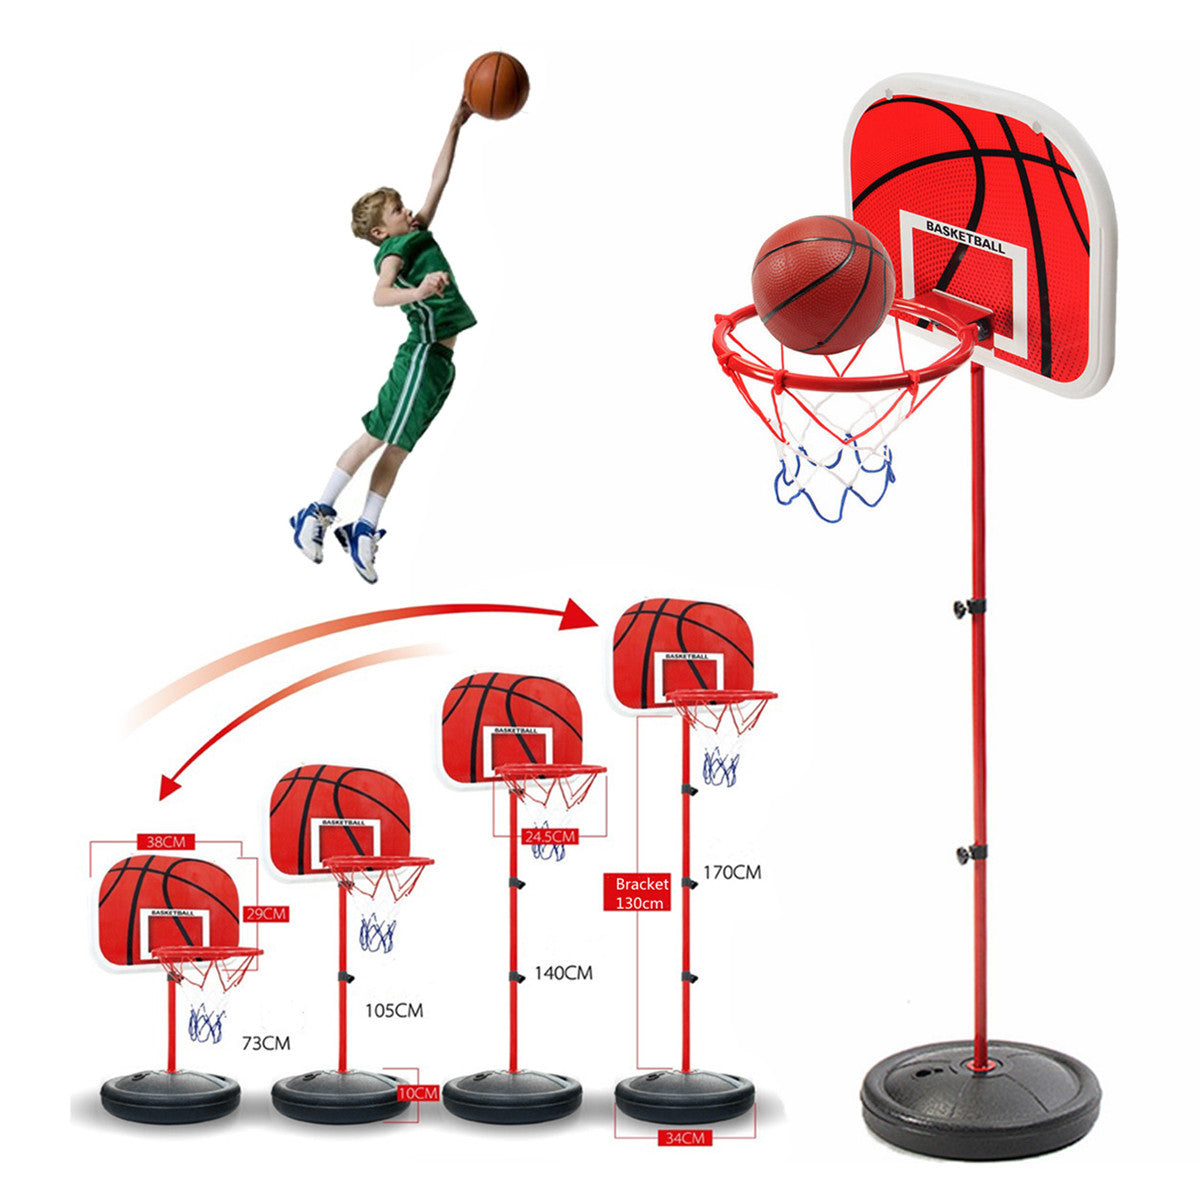 Mini Basketball Stand with Board, Net, Pump and Ball